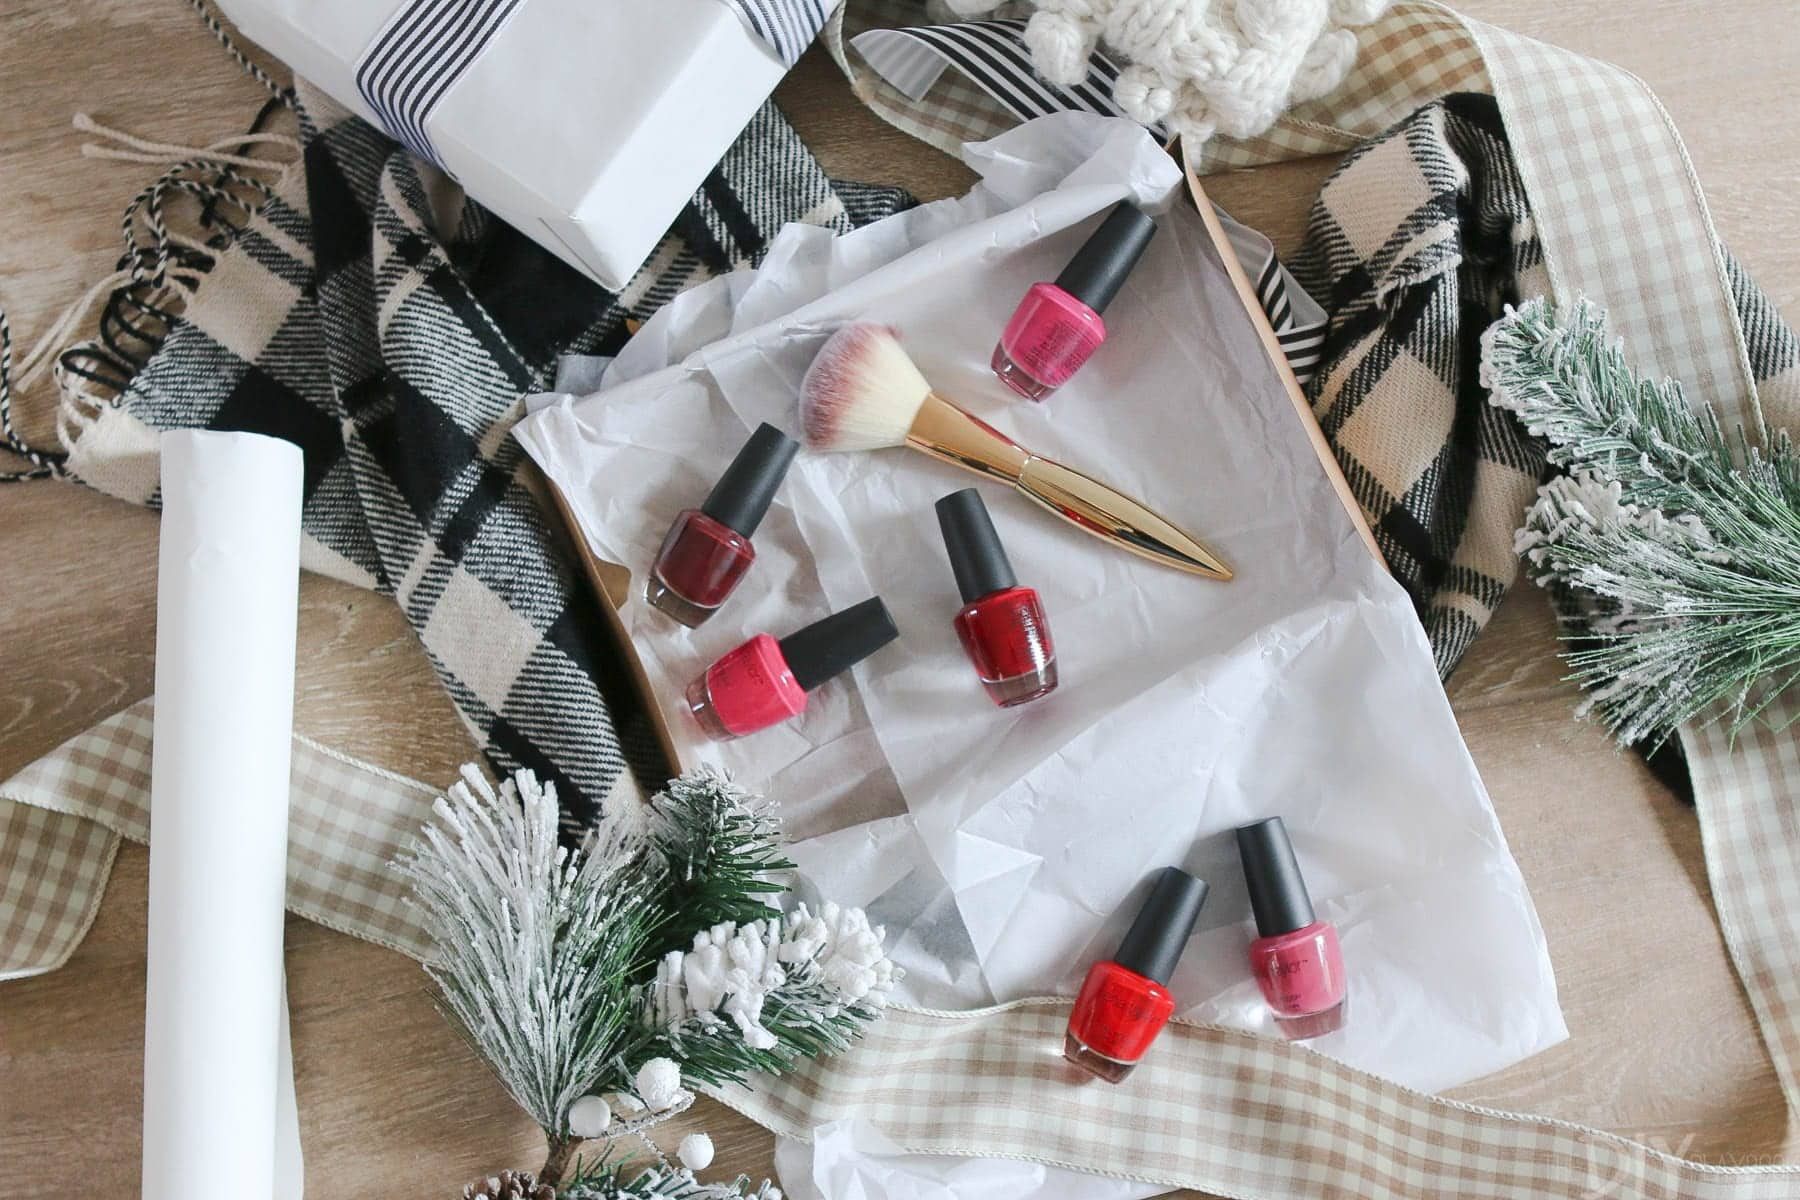 Nail polish packs are perfect for a fashionista in your life. Go with colors - like classic red - that will be in style all year.